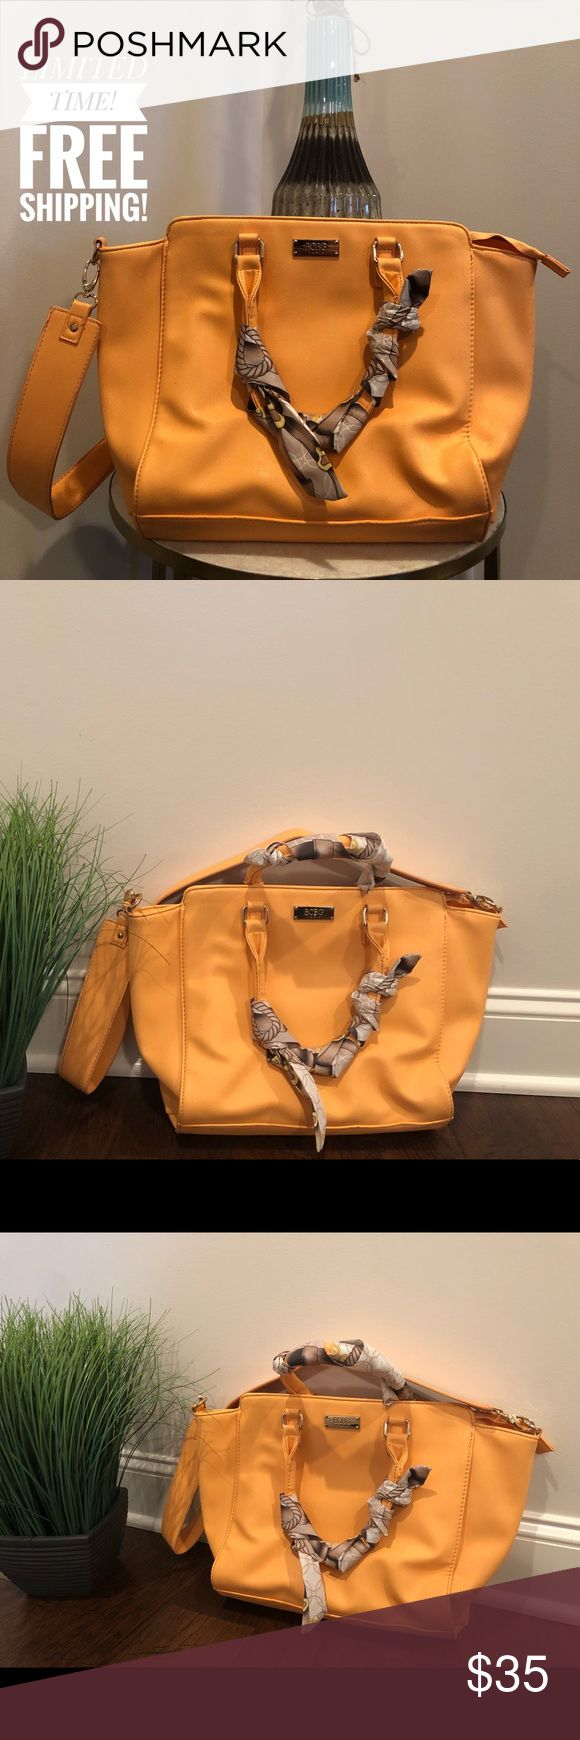 SALE 🔥 BCBG PARIS Satchel Light Peach Bag NEW 🔥 BCBG PARIS Satchel Light Peach Bag includes a shoulder strap and scarfs on both handles. Beautiful Light Peach color for the summer! BCBG Bags Satchels